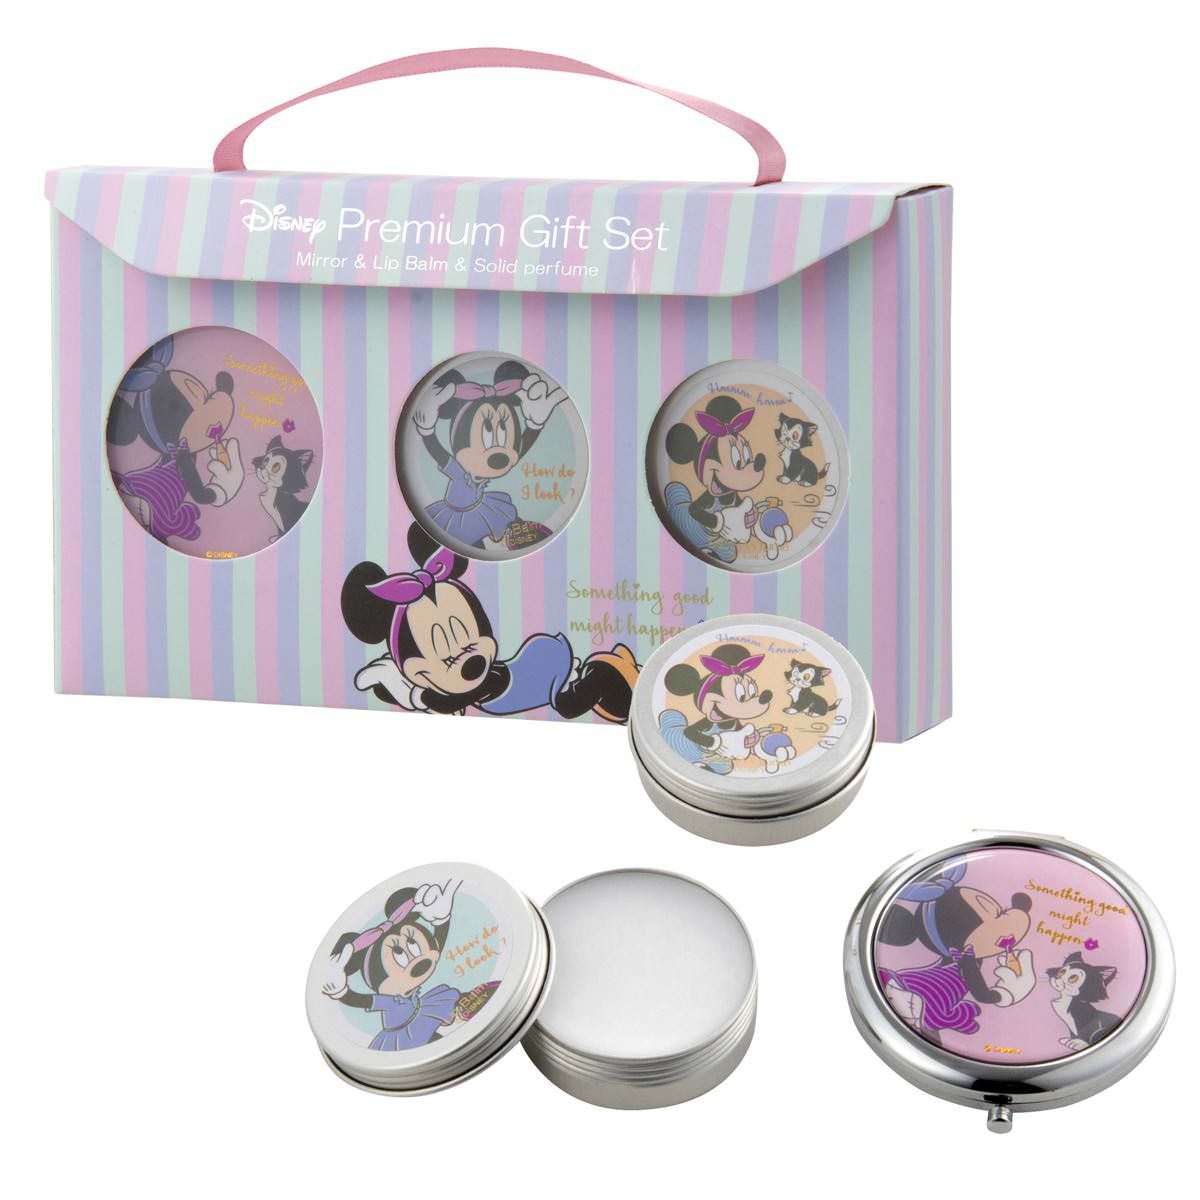 MINNIE MOUSE COLLECTION コフレギストセット